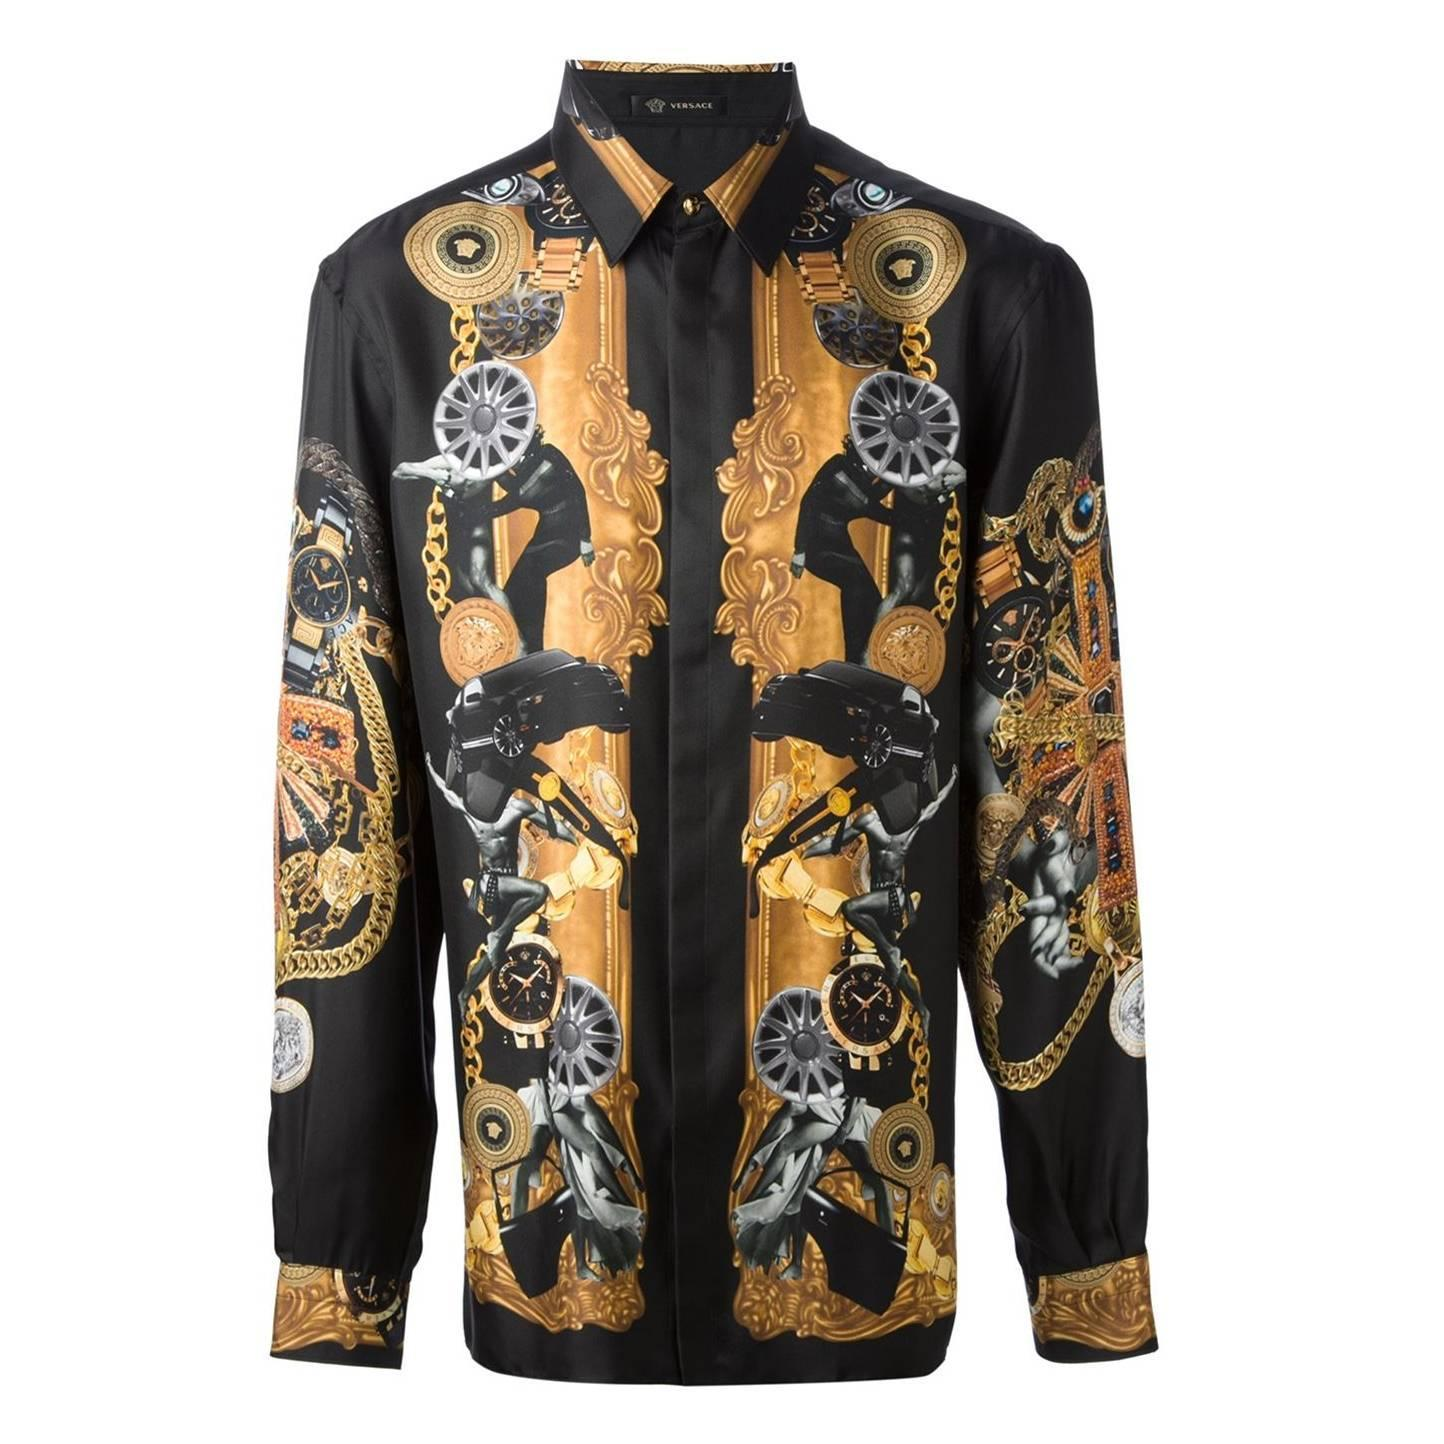 Versace 100 silk black printed men 39 s shirt for sale at for Versace style shirt mens